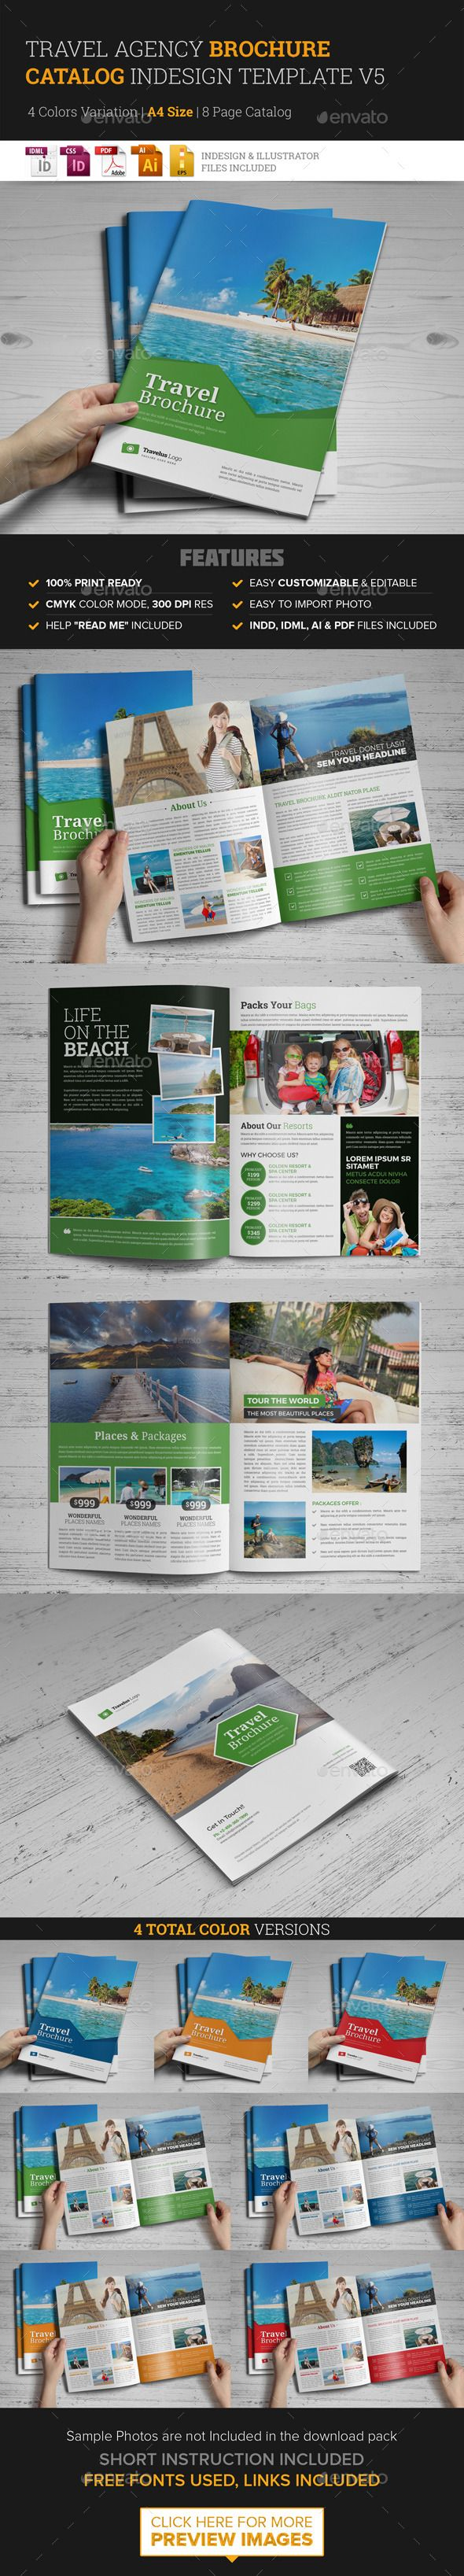 Travel Brochure Catalog InDesign Template v5